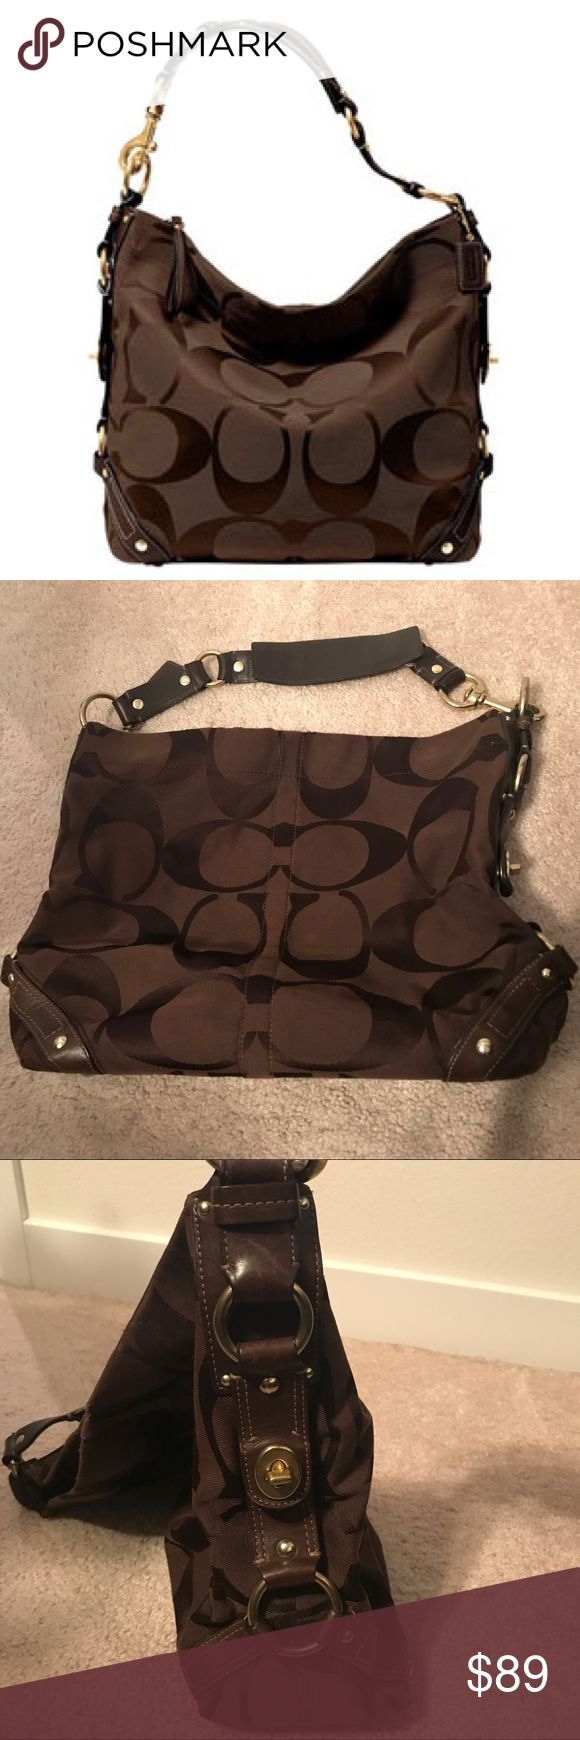 Coach Carly Large Brown Bag Gorgeous Coach Carly bag! Used only a handful of times. It has a very minor bit of natural wear that you can see in the pictures along the very top edge, just from use. Happy to send a more detailed pic if requested! Beautiful bag! Coach Bags Shoulder Bags